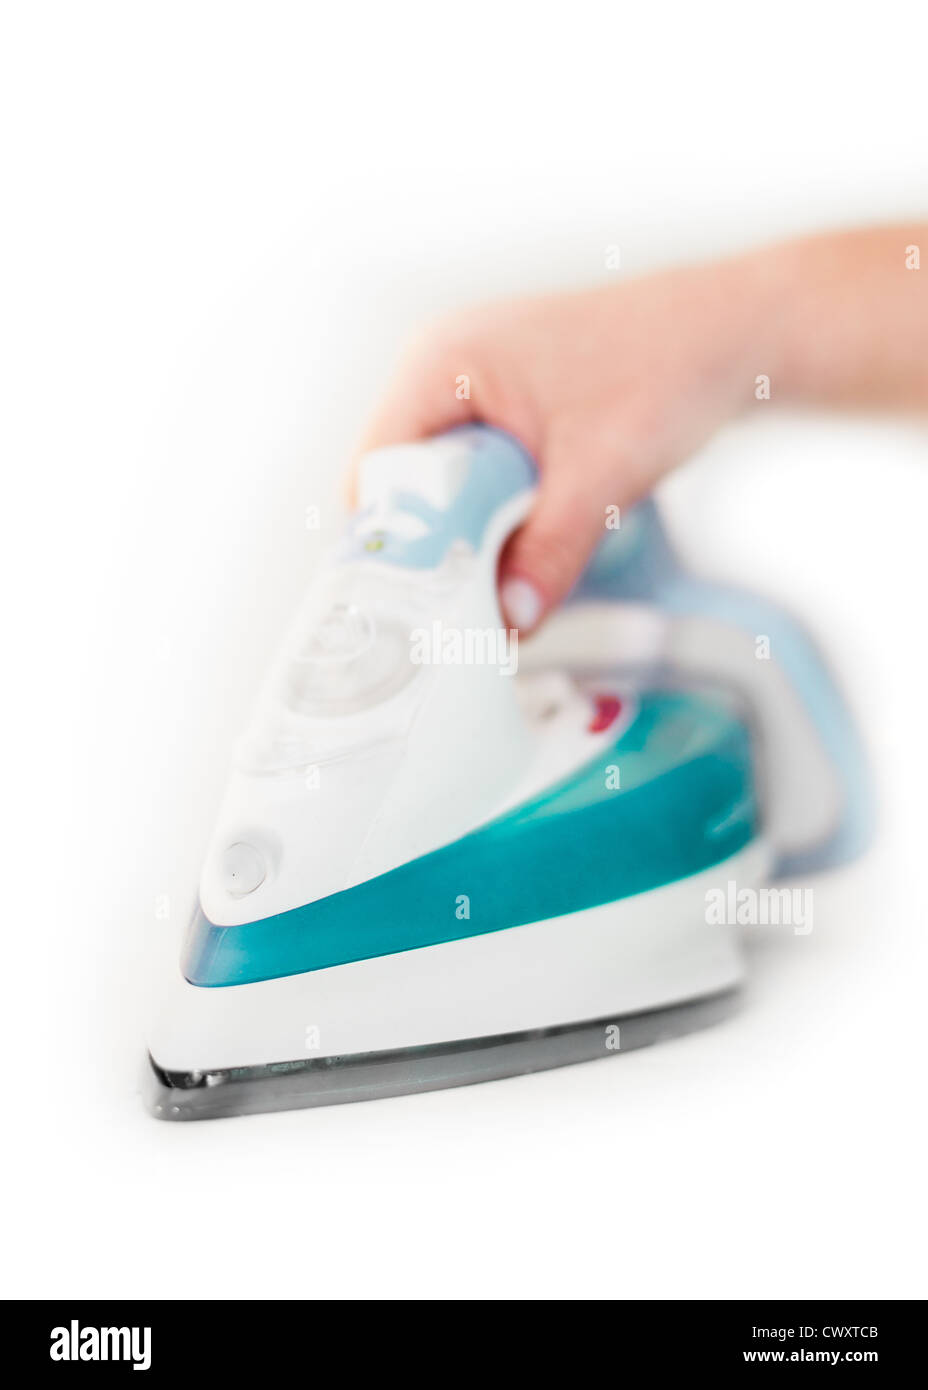 A woman's hand , using a modern electric steam iron - Stock Image